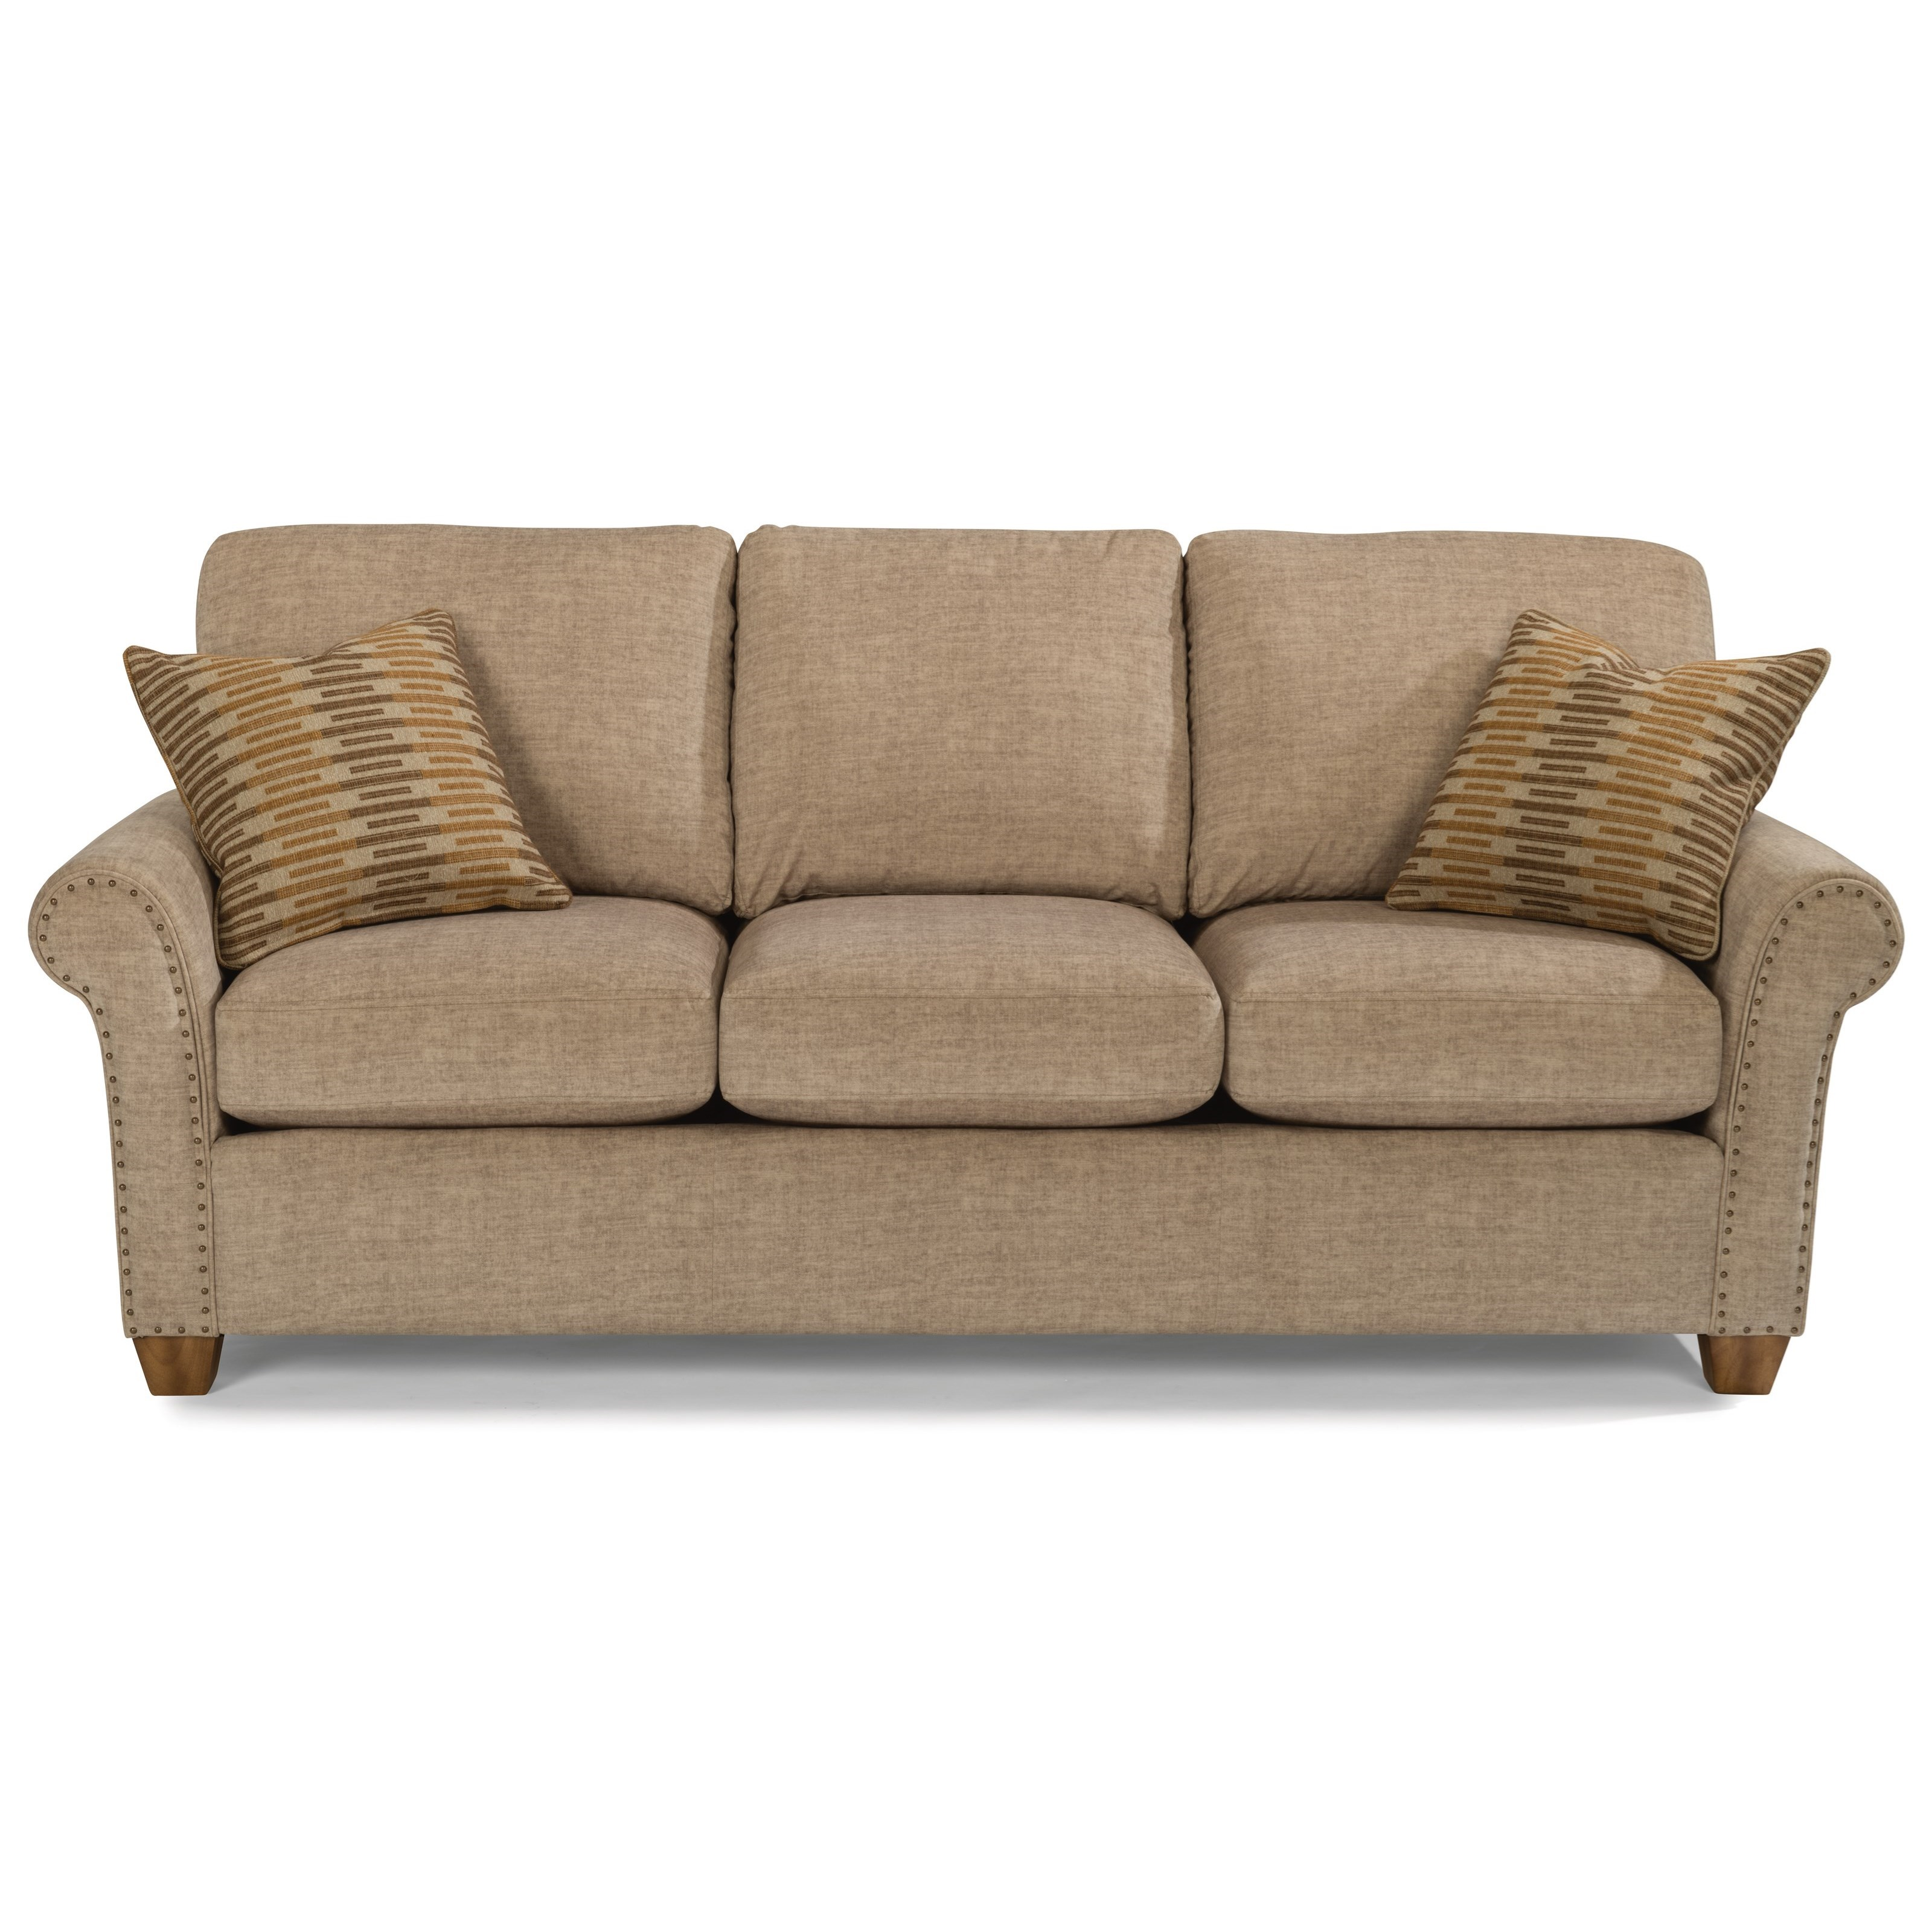 Flexsteel Christine Rolled Arm Sofa with Nailhead Studs